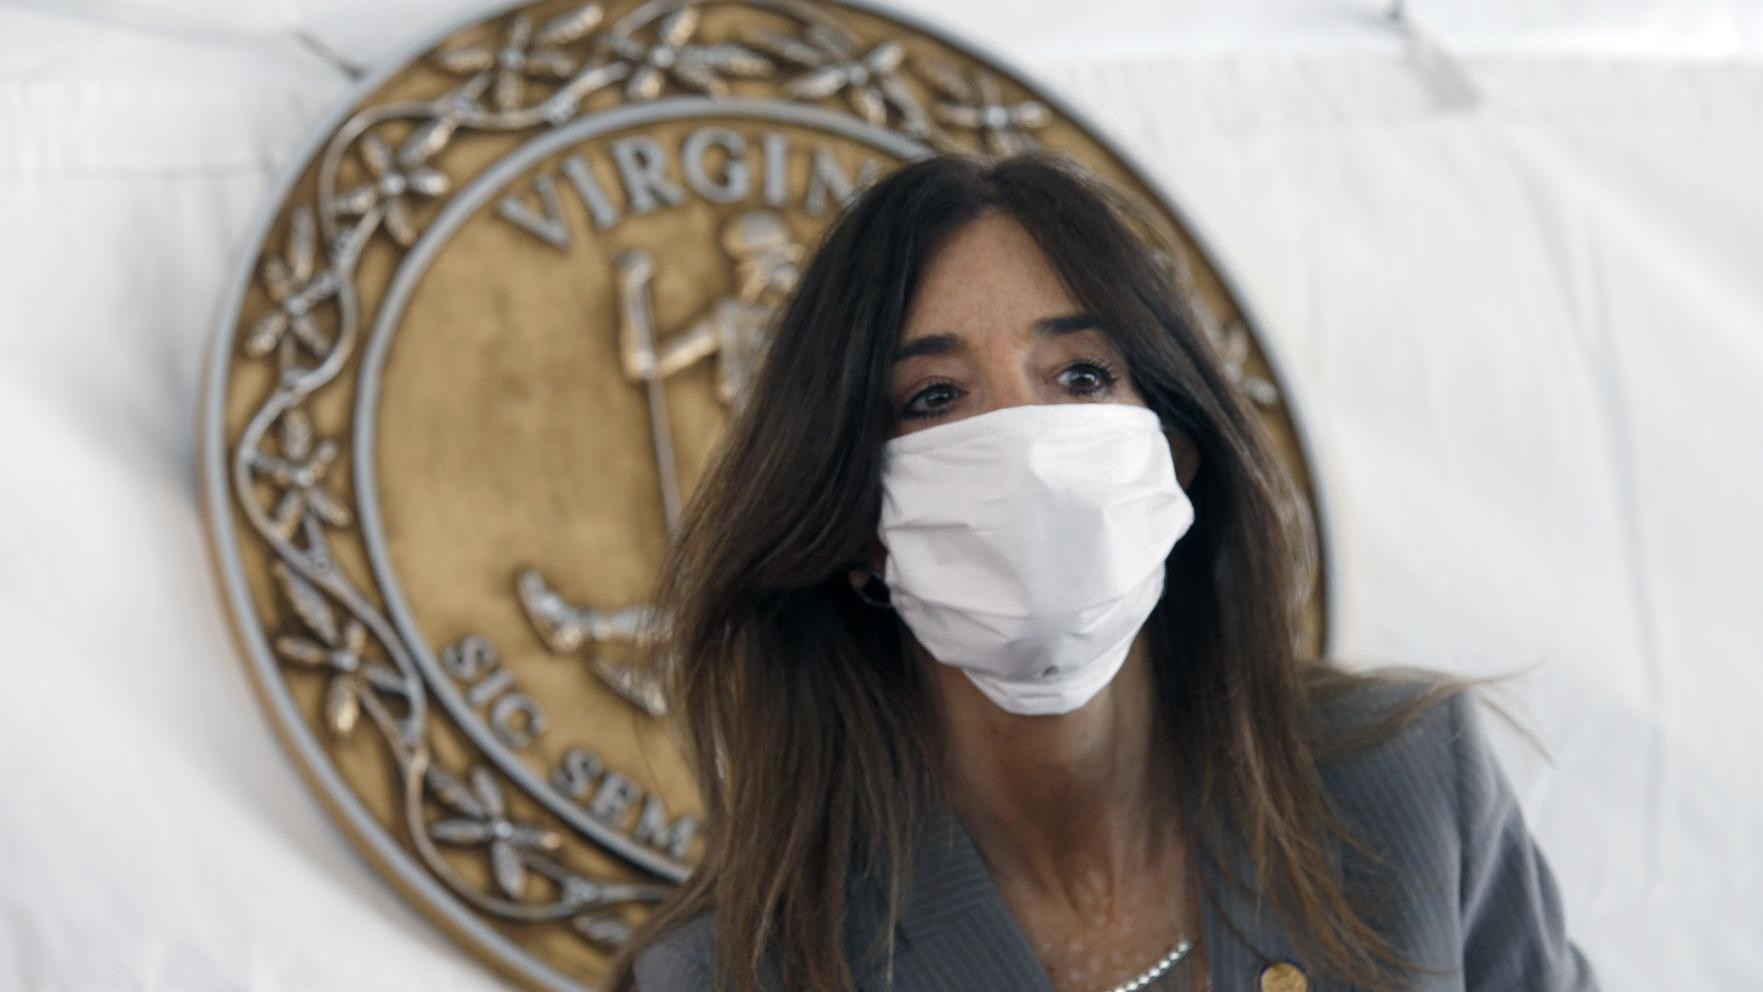 As assembly returns to Capitol after 17 months, so does the issue of face masks